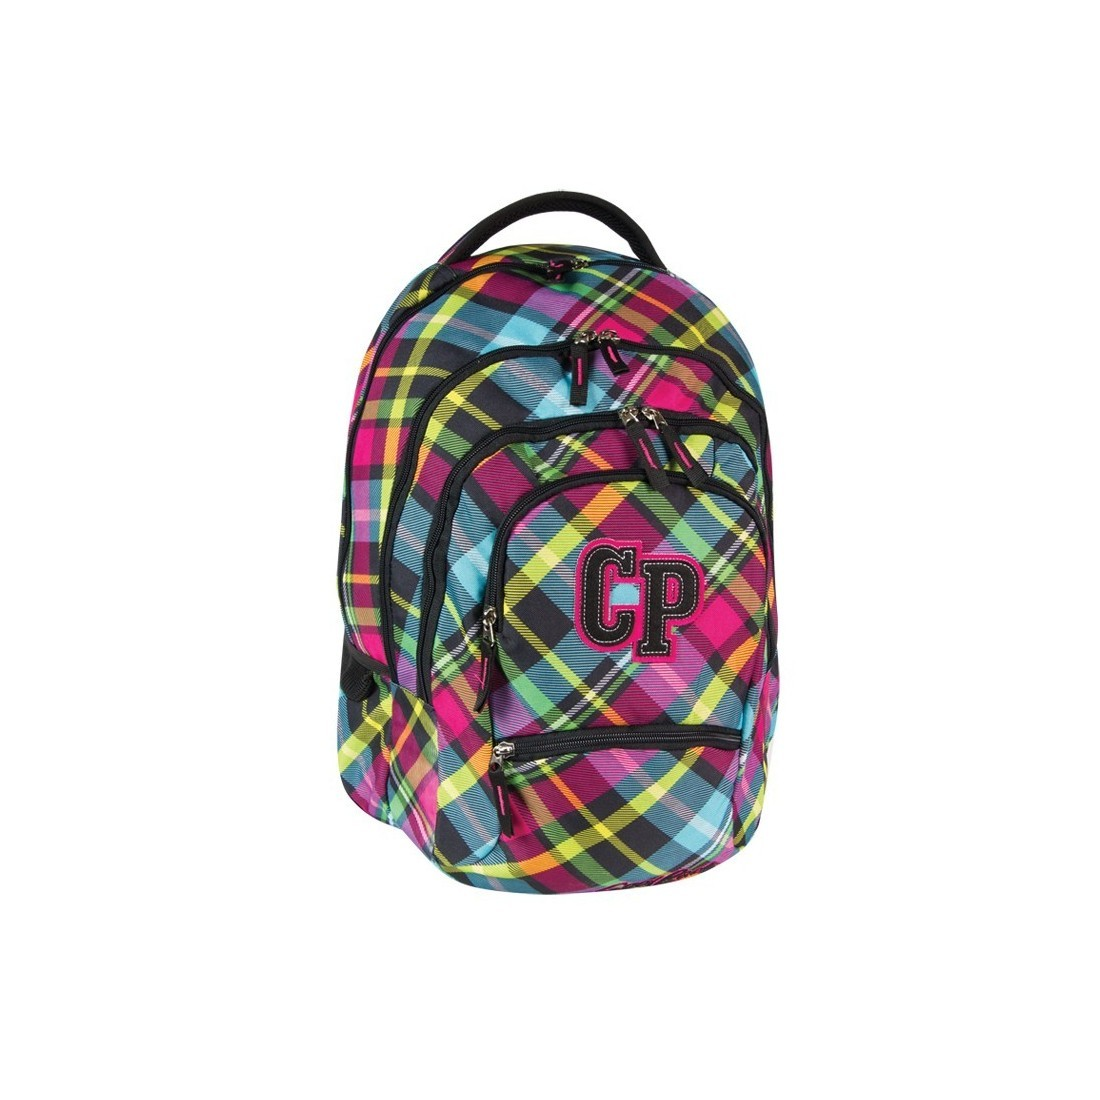 PLECAK MŁODZIEŻOWY COOLPACK COLLEGE CANDY CP 091